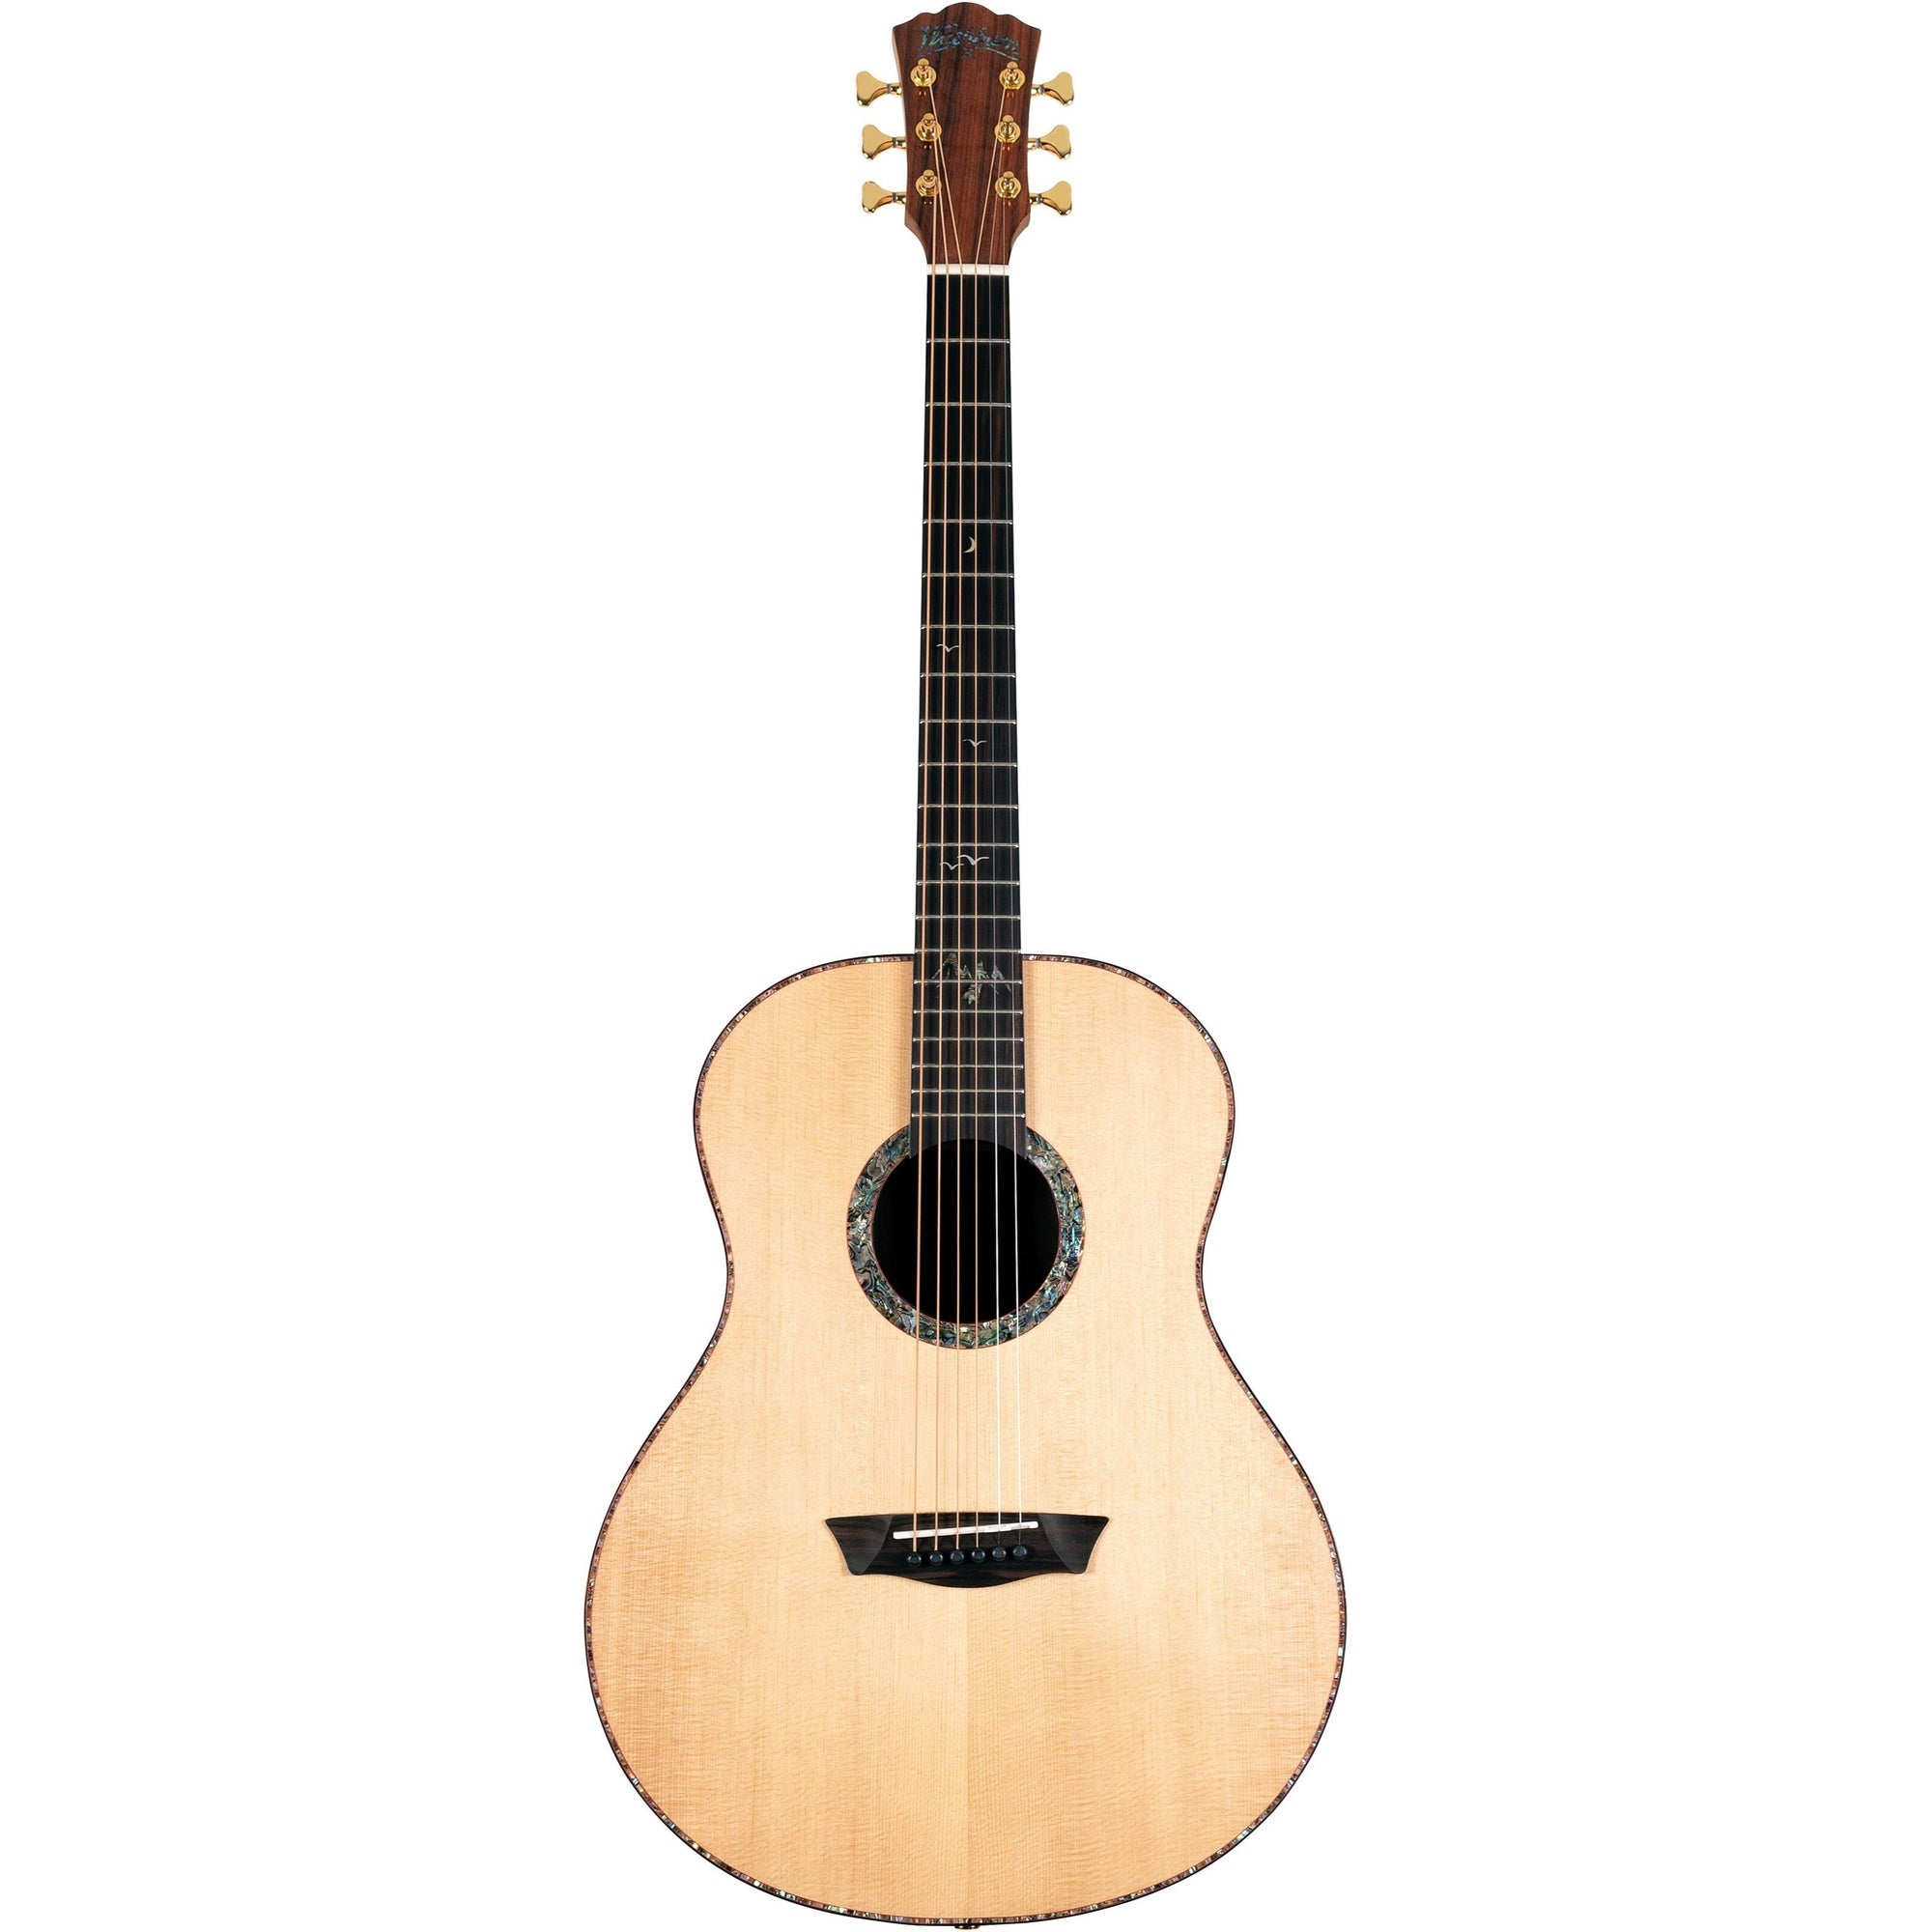 Washburn Bella Tono Elegante S24S Acoustic Guitar, Natural